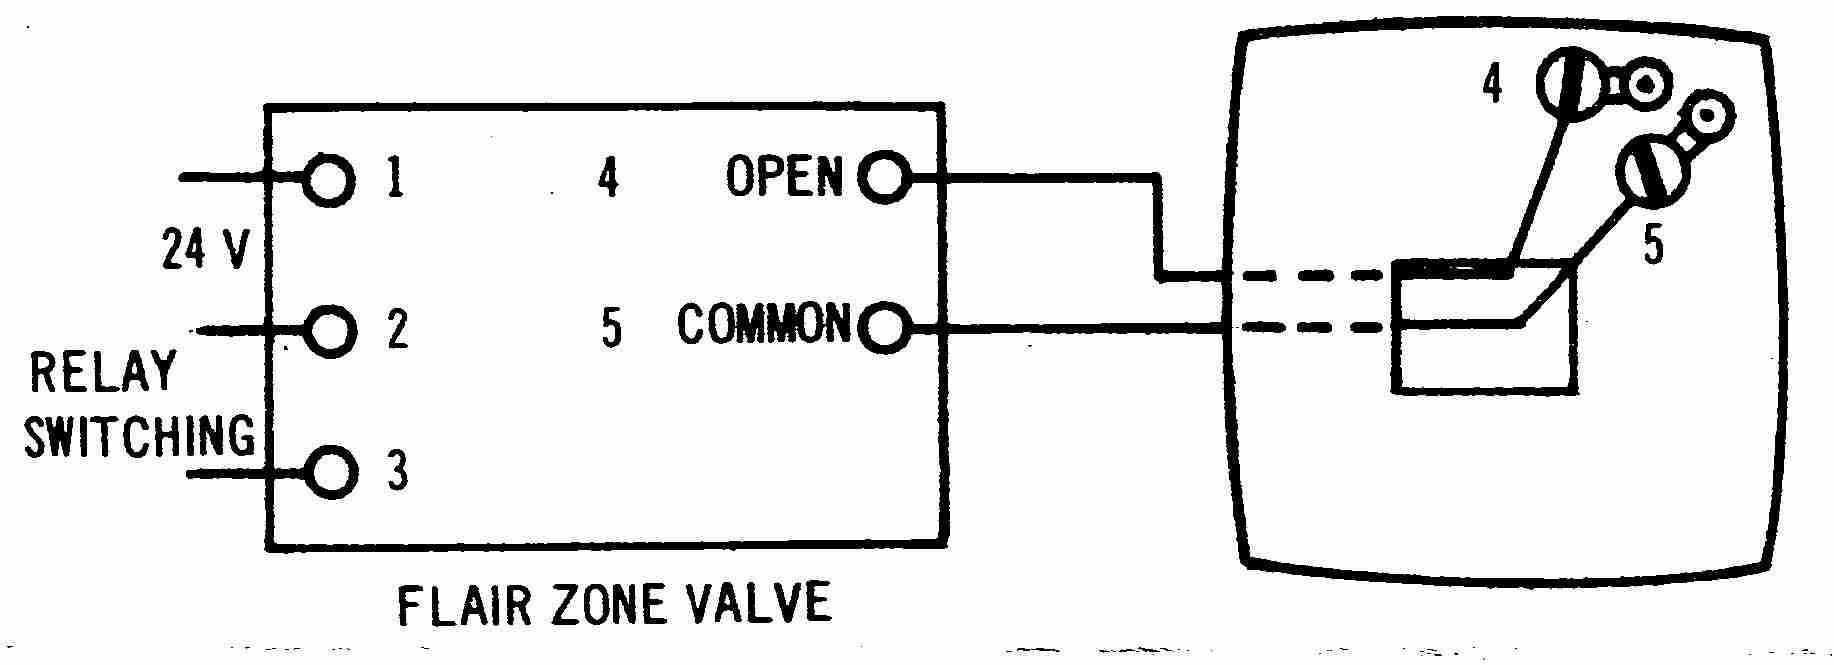 Flair2w_001_DJFc1 room thermostat wiring diagrams for hvac systems fcu wiring diagram at sewacar.co